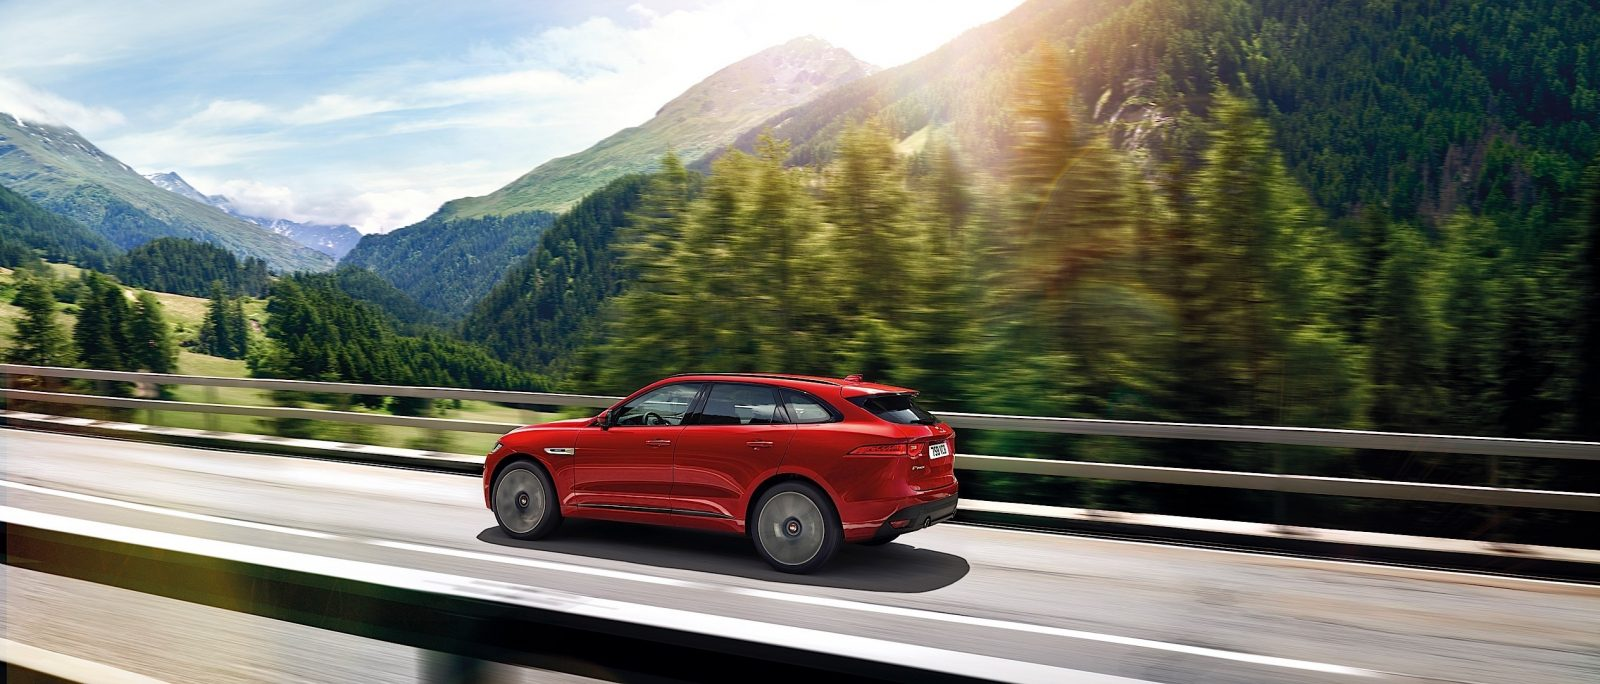 jlr-boss-launches-staunch-defence-of-diesel-117564_1